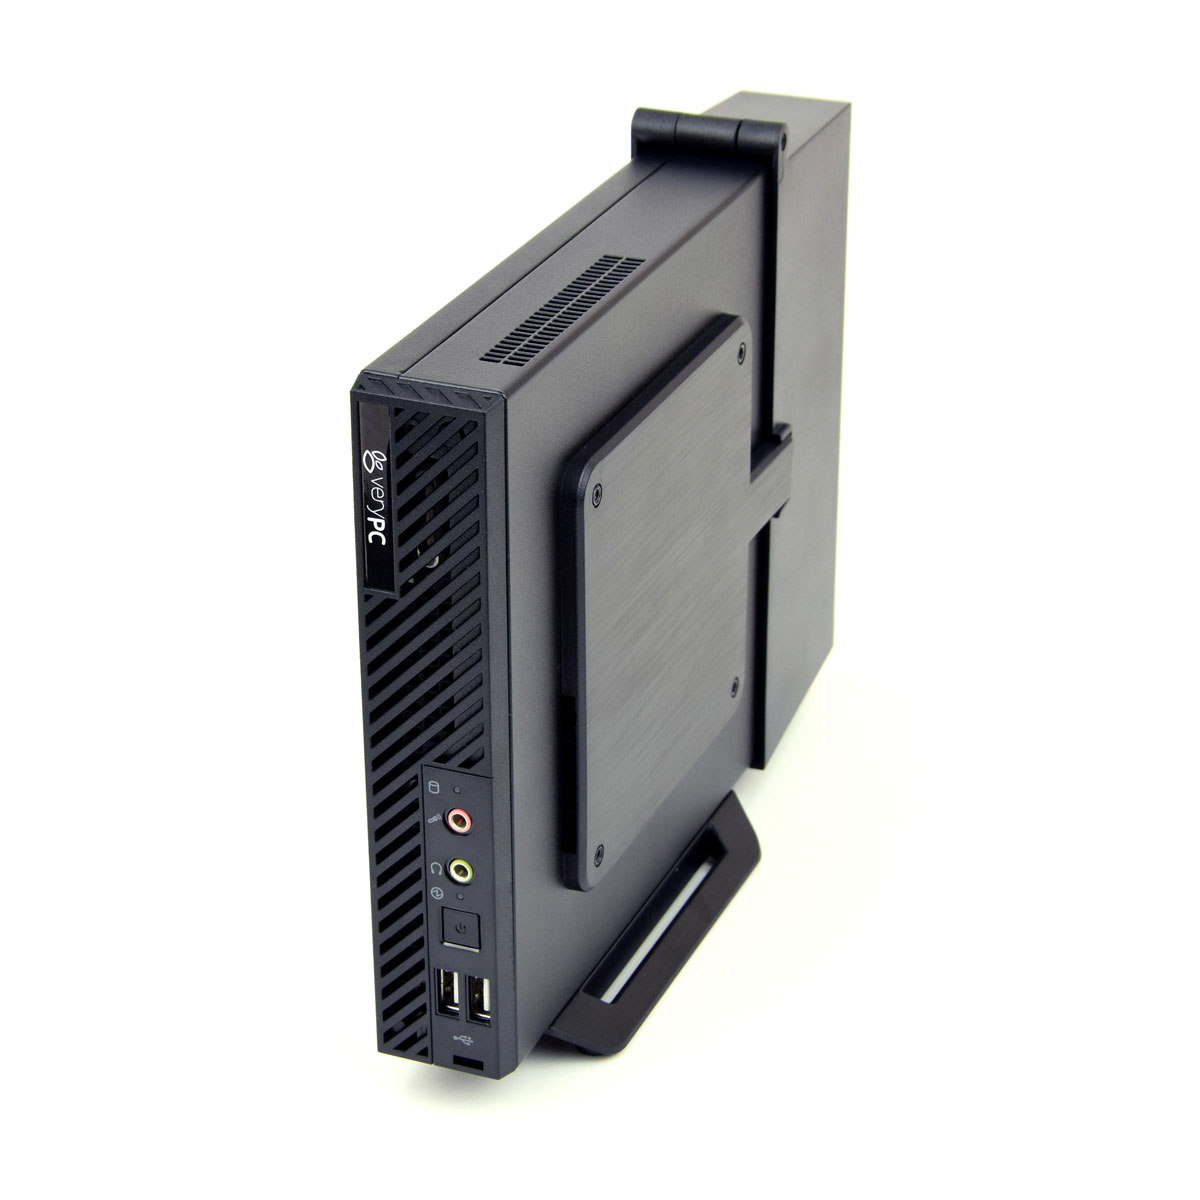 Vesa Mountable Micro Pc With Lockable Cable Shroud